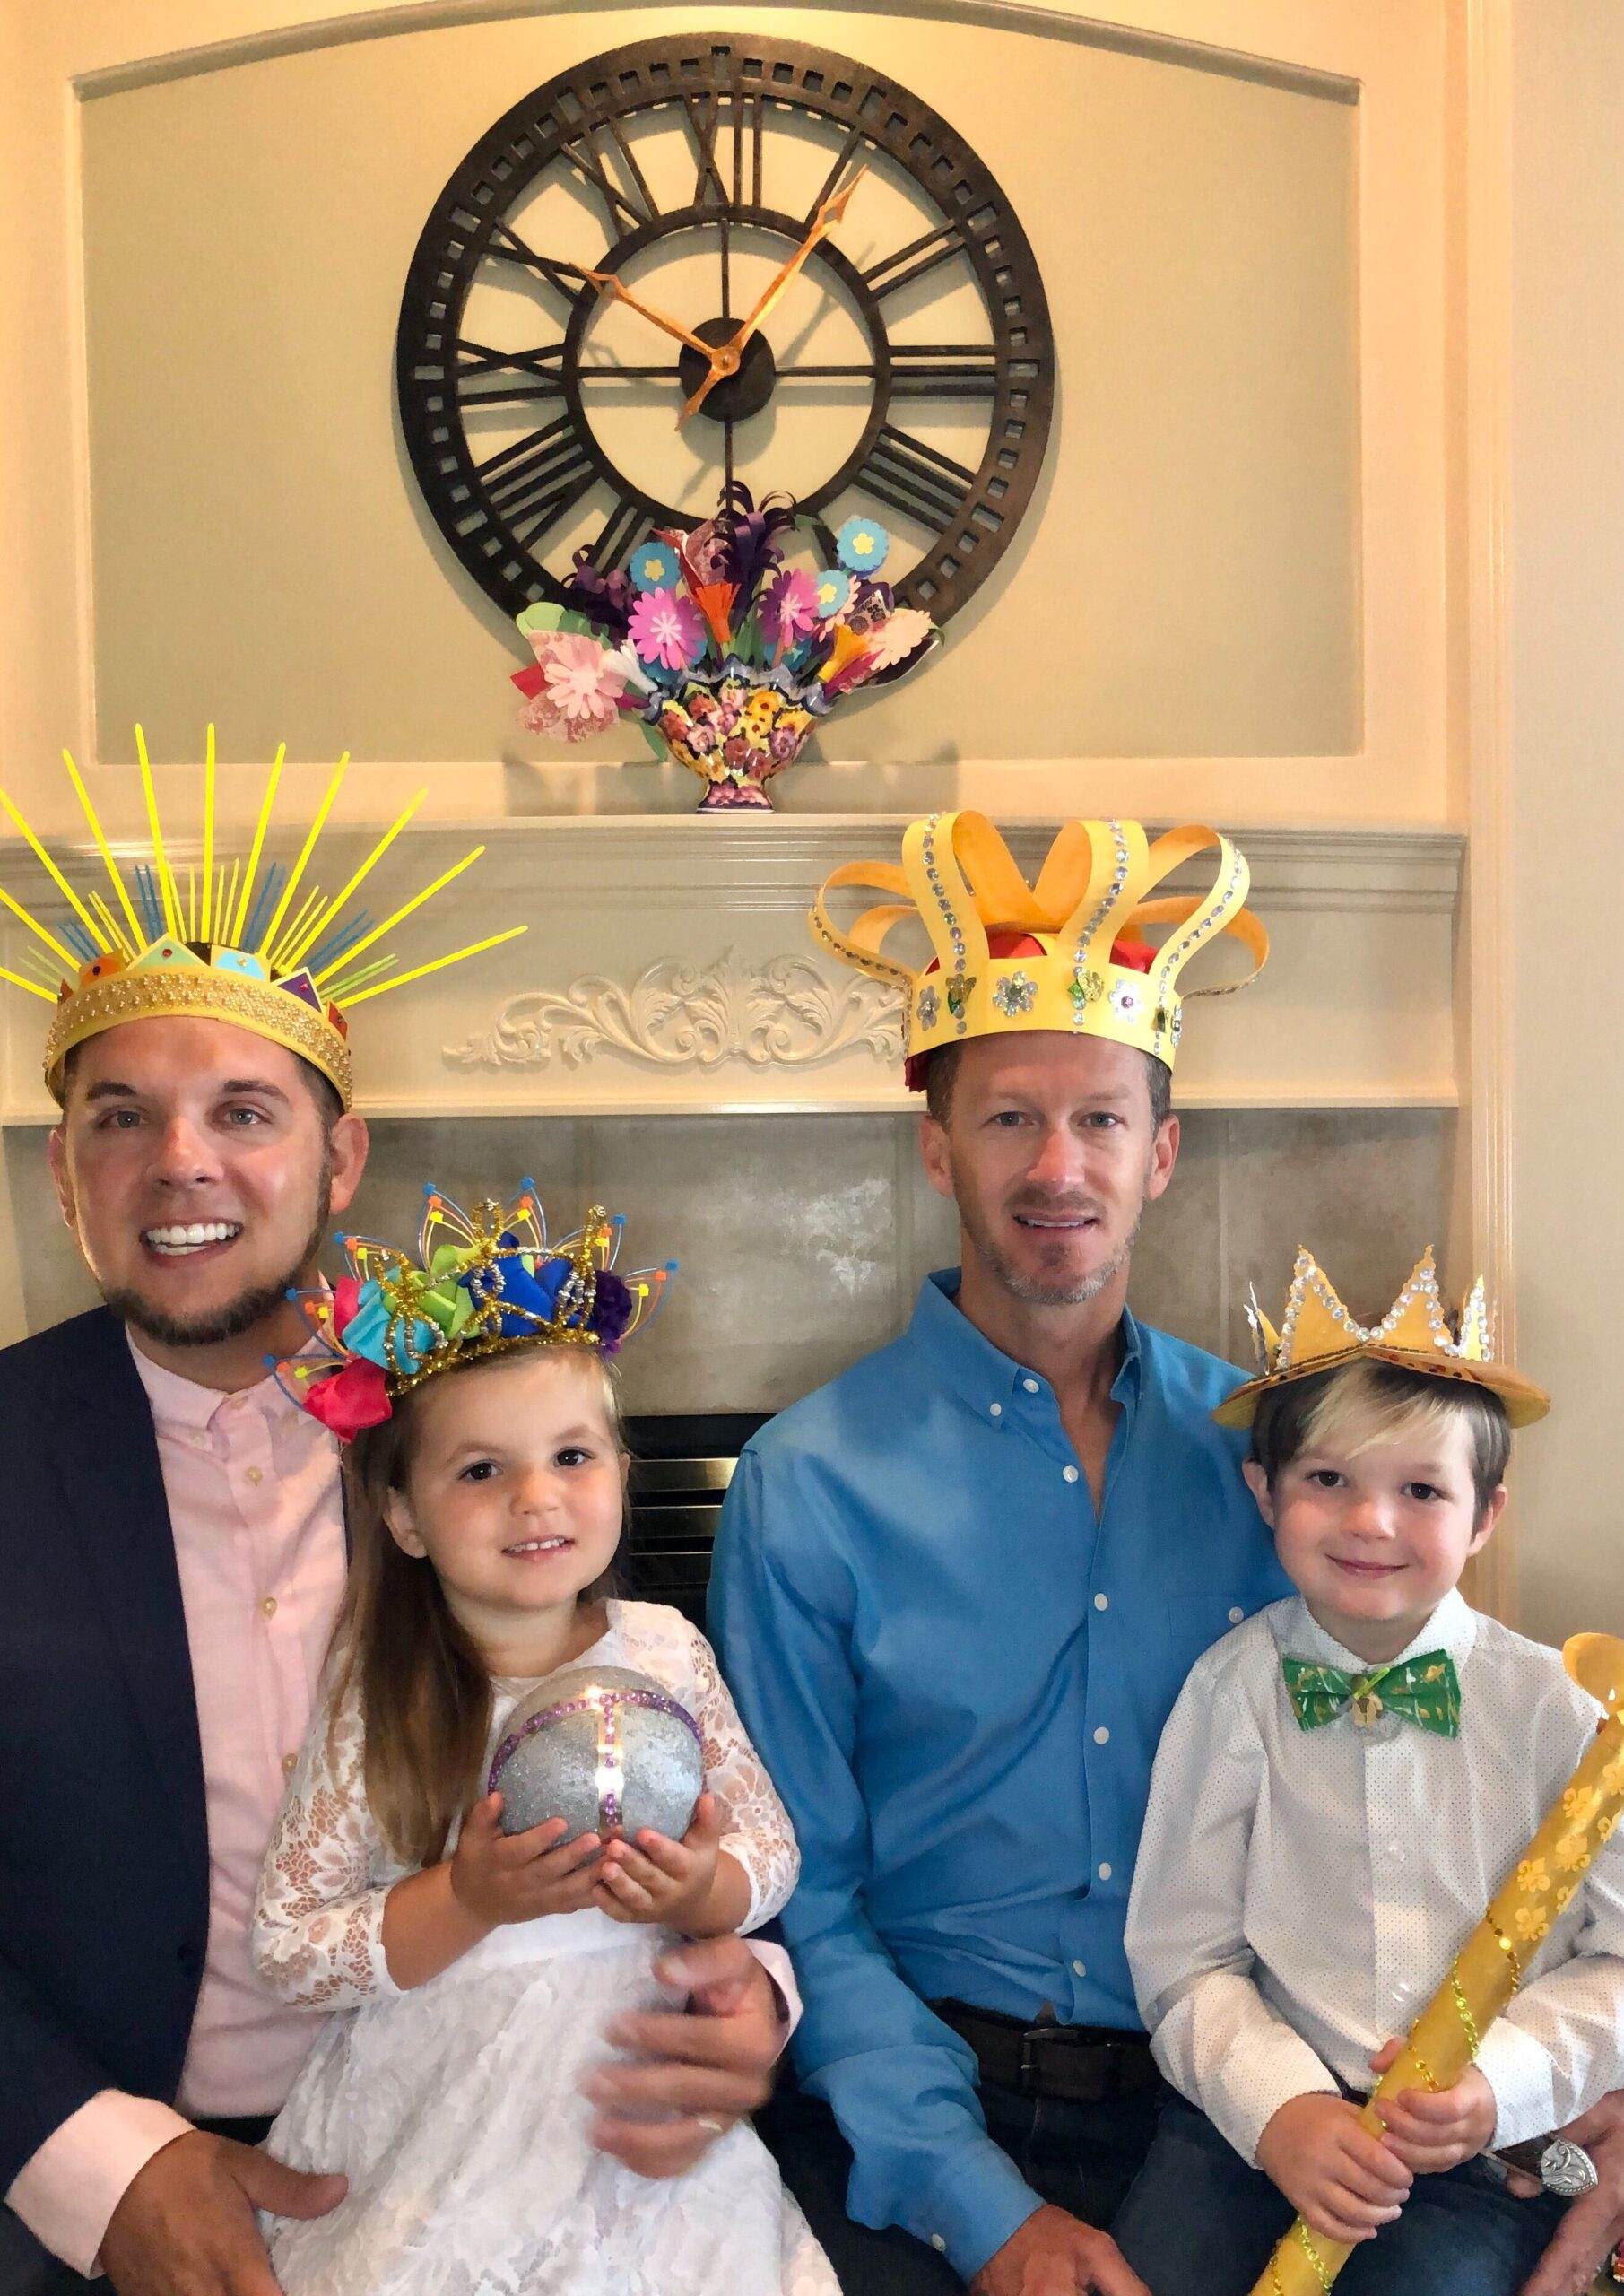 A family of four--two dads, a boy and a girl--all wear crafted crowns